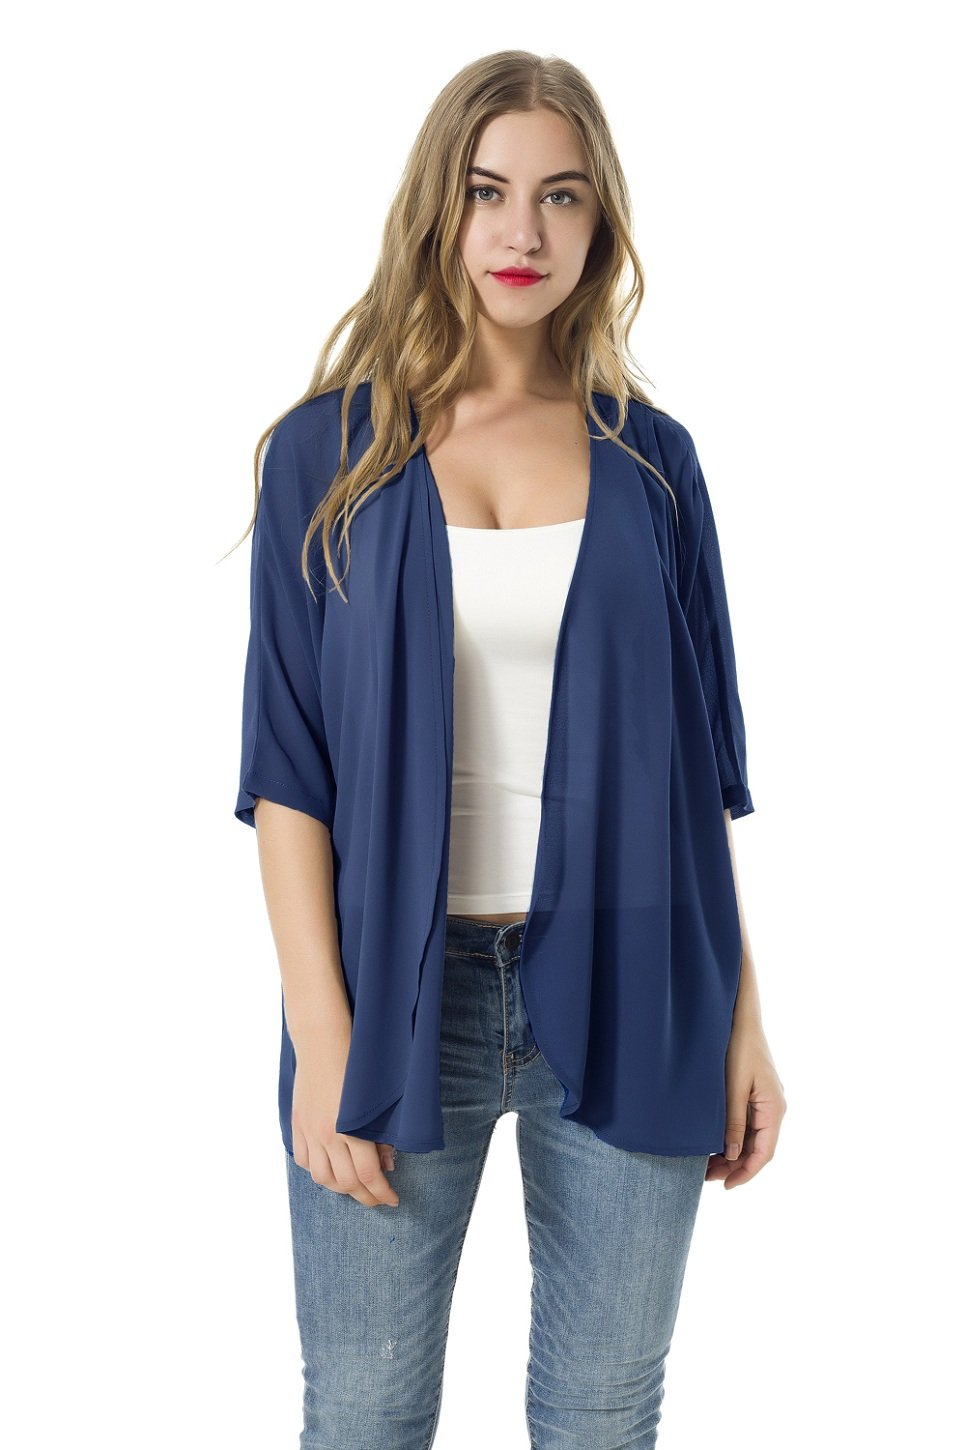 XINAO Women's Open Front Casual Solid Comfy Light Short Sleeve Chiffon Cardigan (L, Blue)